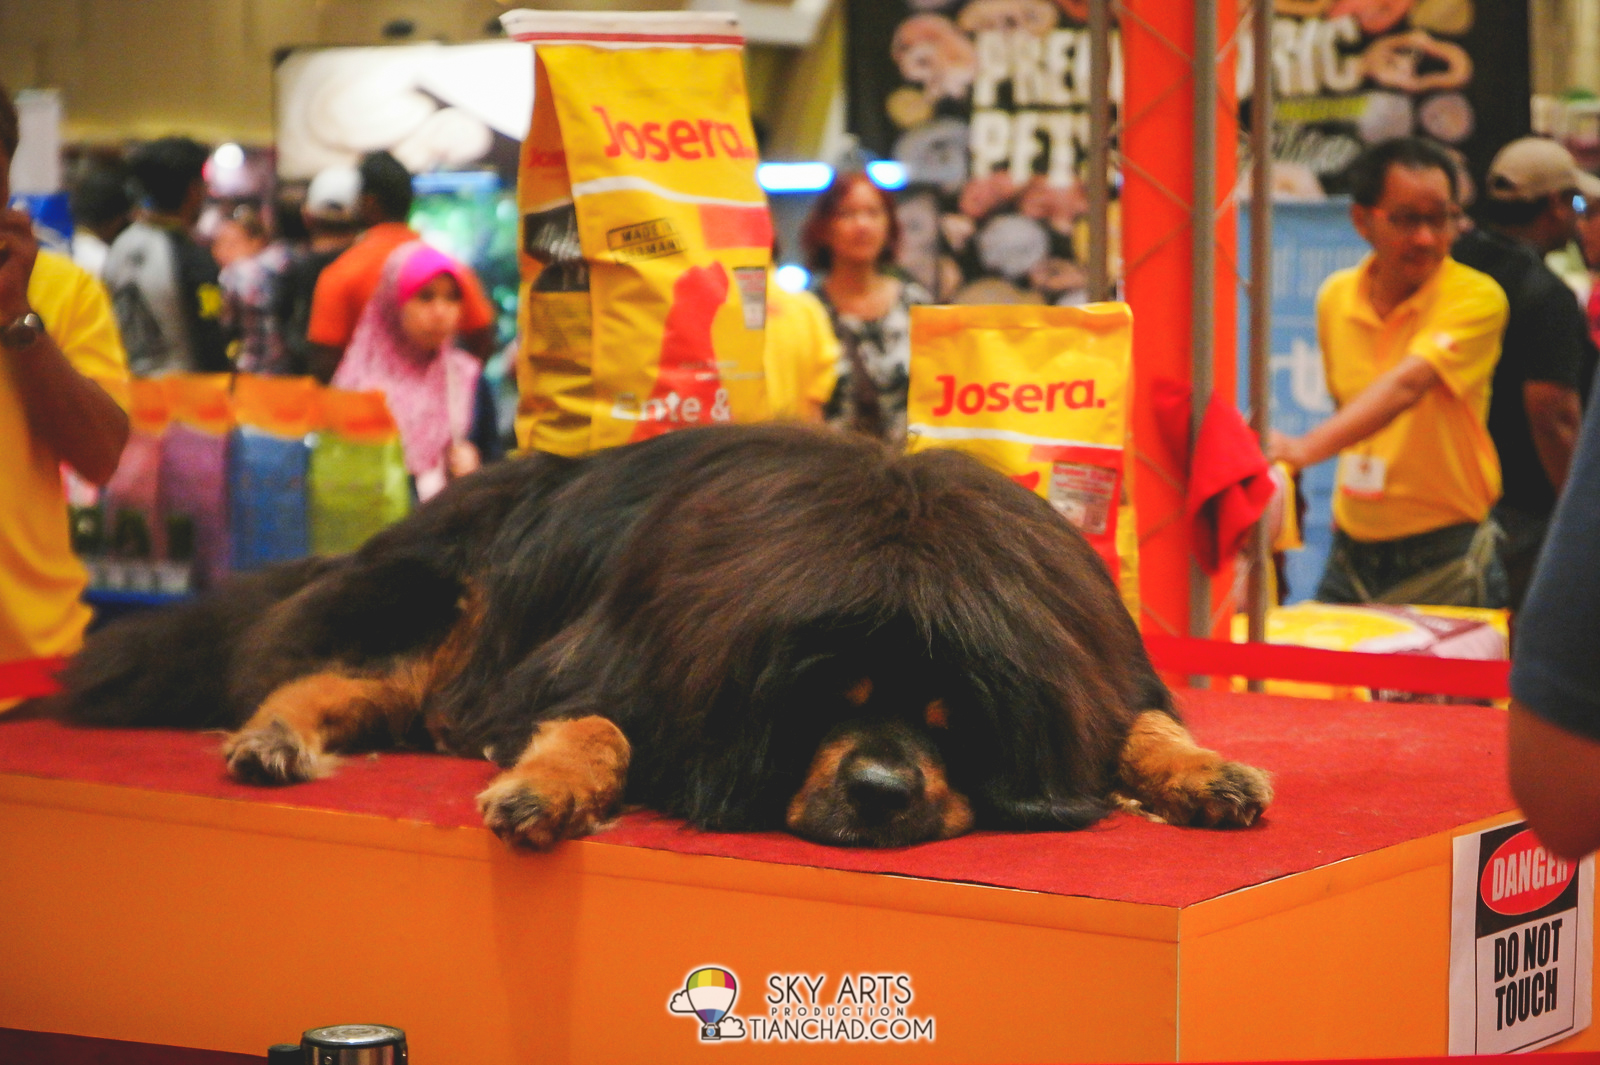 The first thing I saw is this huge Tibetan Mastiff dog on an elevated platform. He seems bored